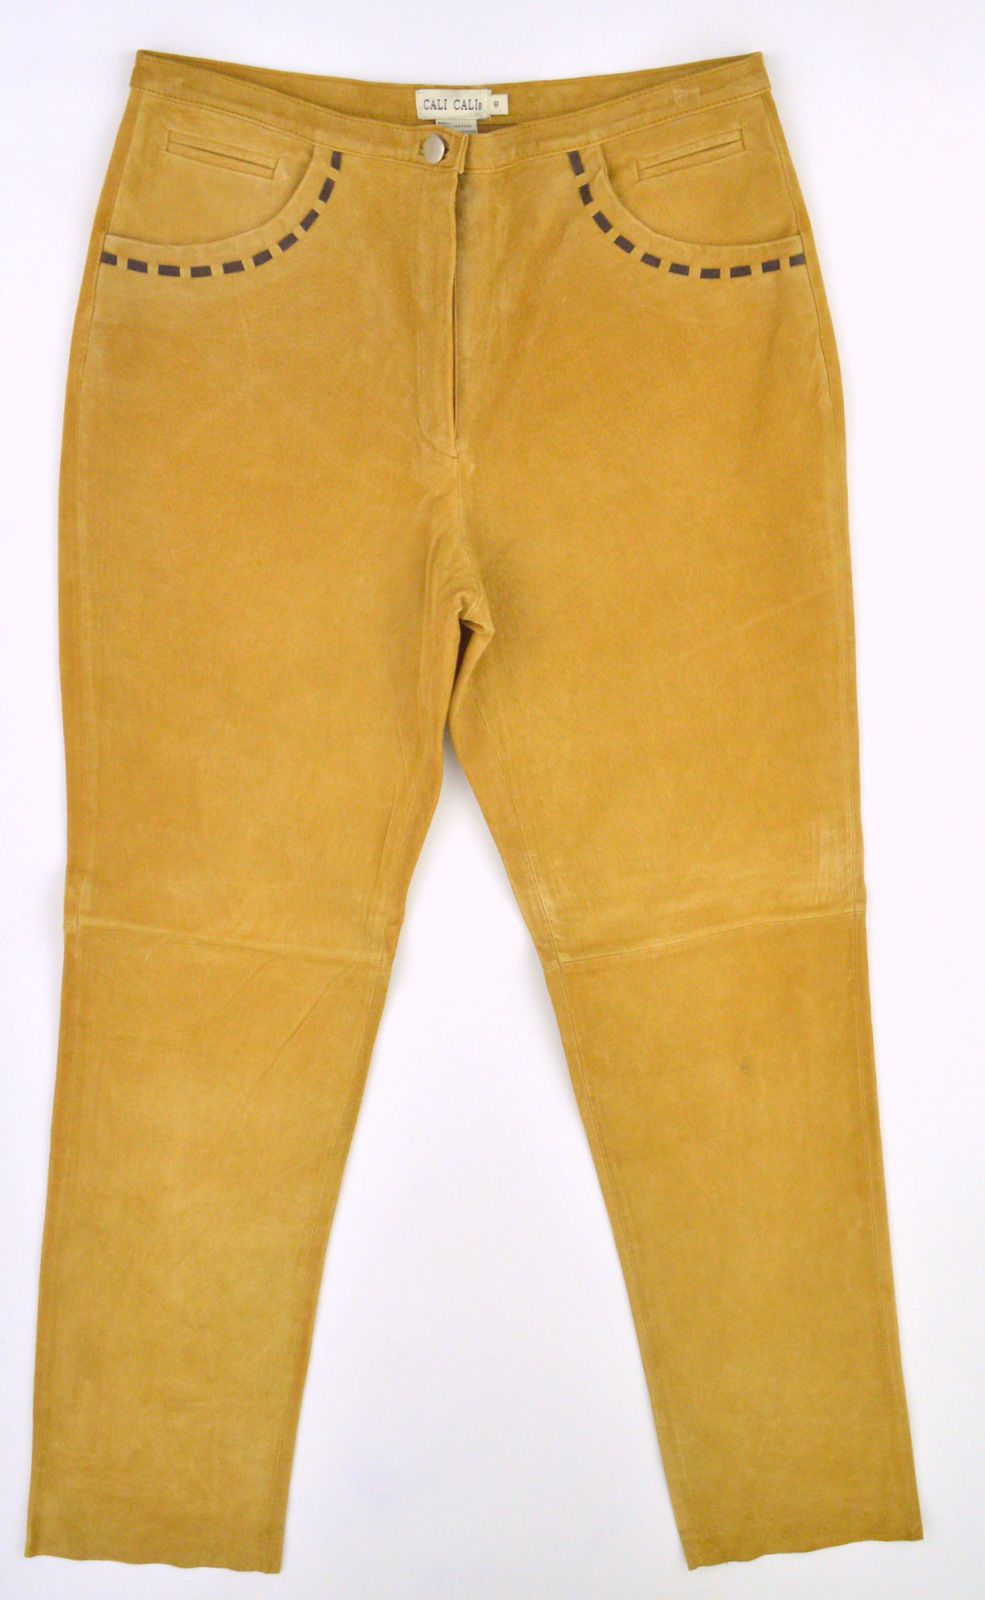 CALI CALI Womens Tan 100% Suede Leather Fully Lined Pants  Sz 8